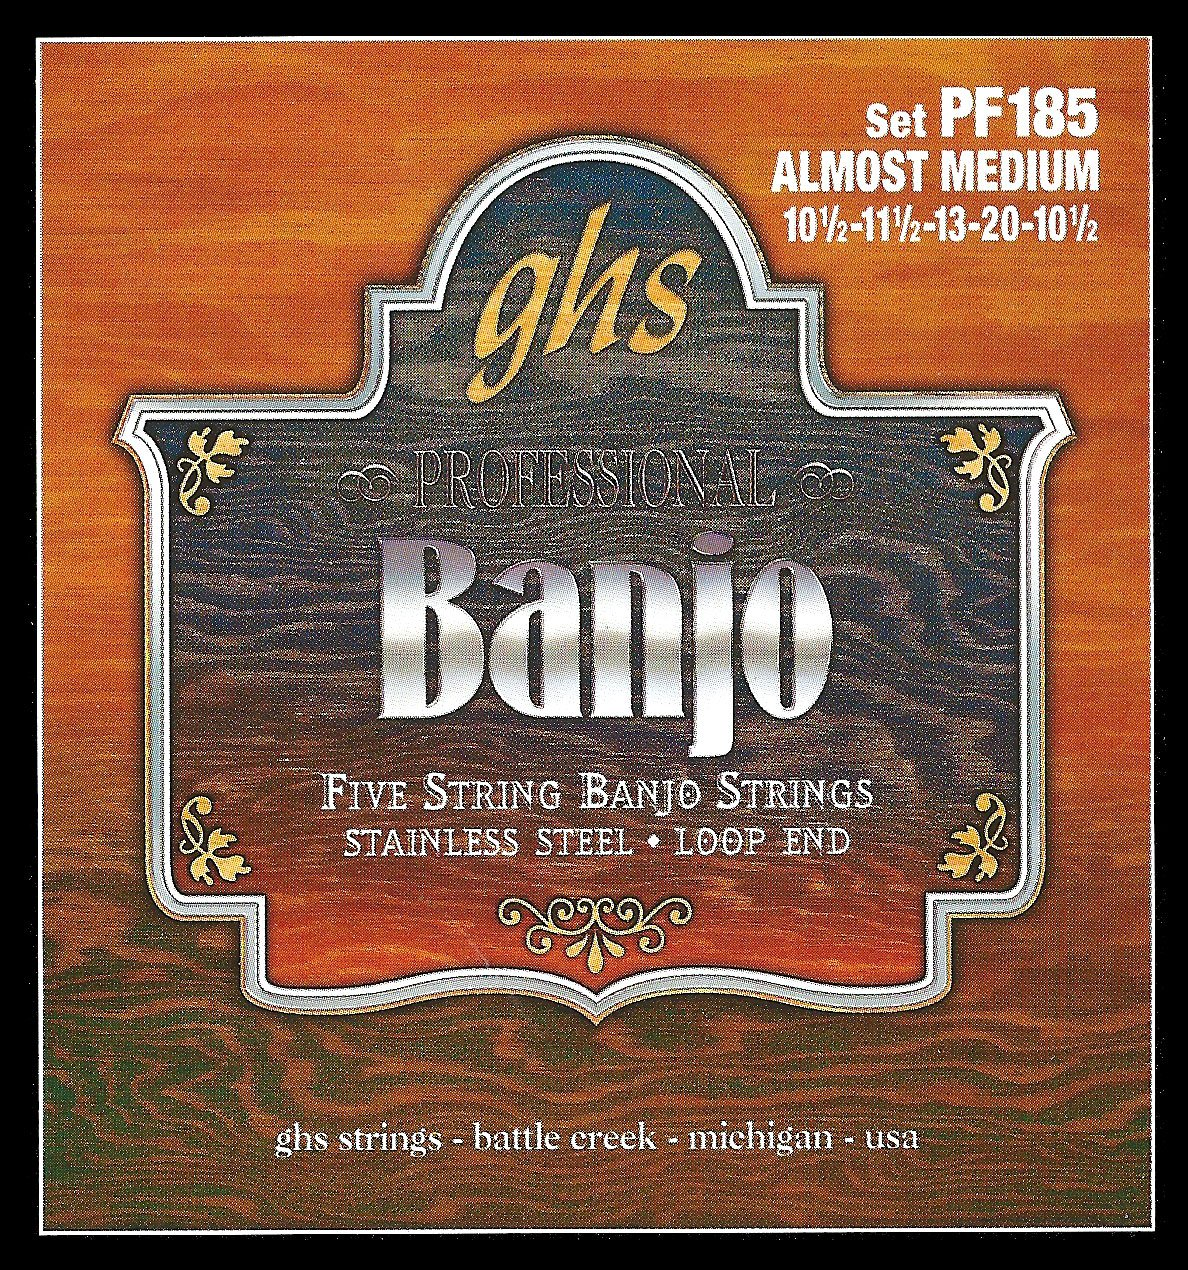 GHS PF185 STAINLESS STEEL 5-STRING - Stainless Steel Almost Medium Banjo Strings